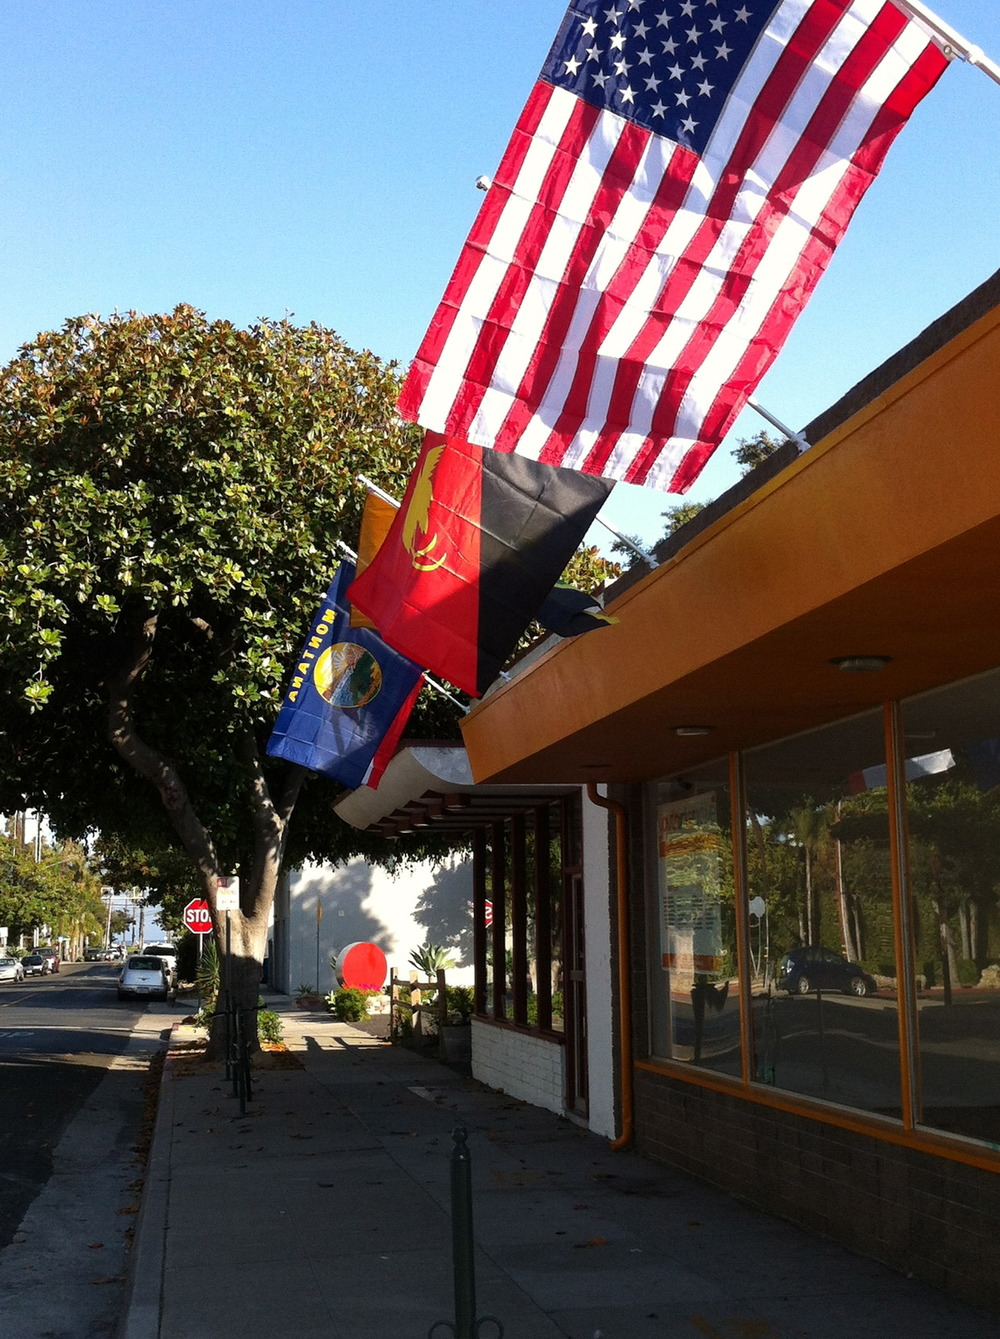 A tough morning faced with vandalism in the Funk Zone!!!! Not only did the USA and California flag get stolen with their polls on Funk day weekend, but now someone has flicked white paint on all the other flags….why do that?!!